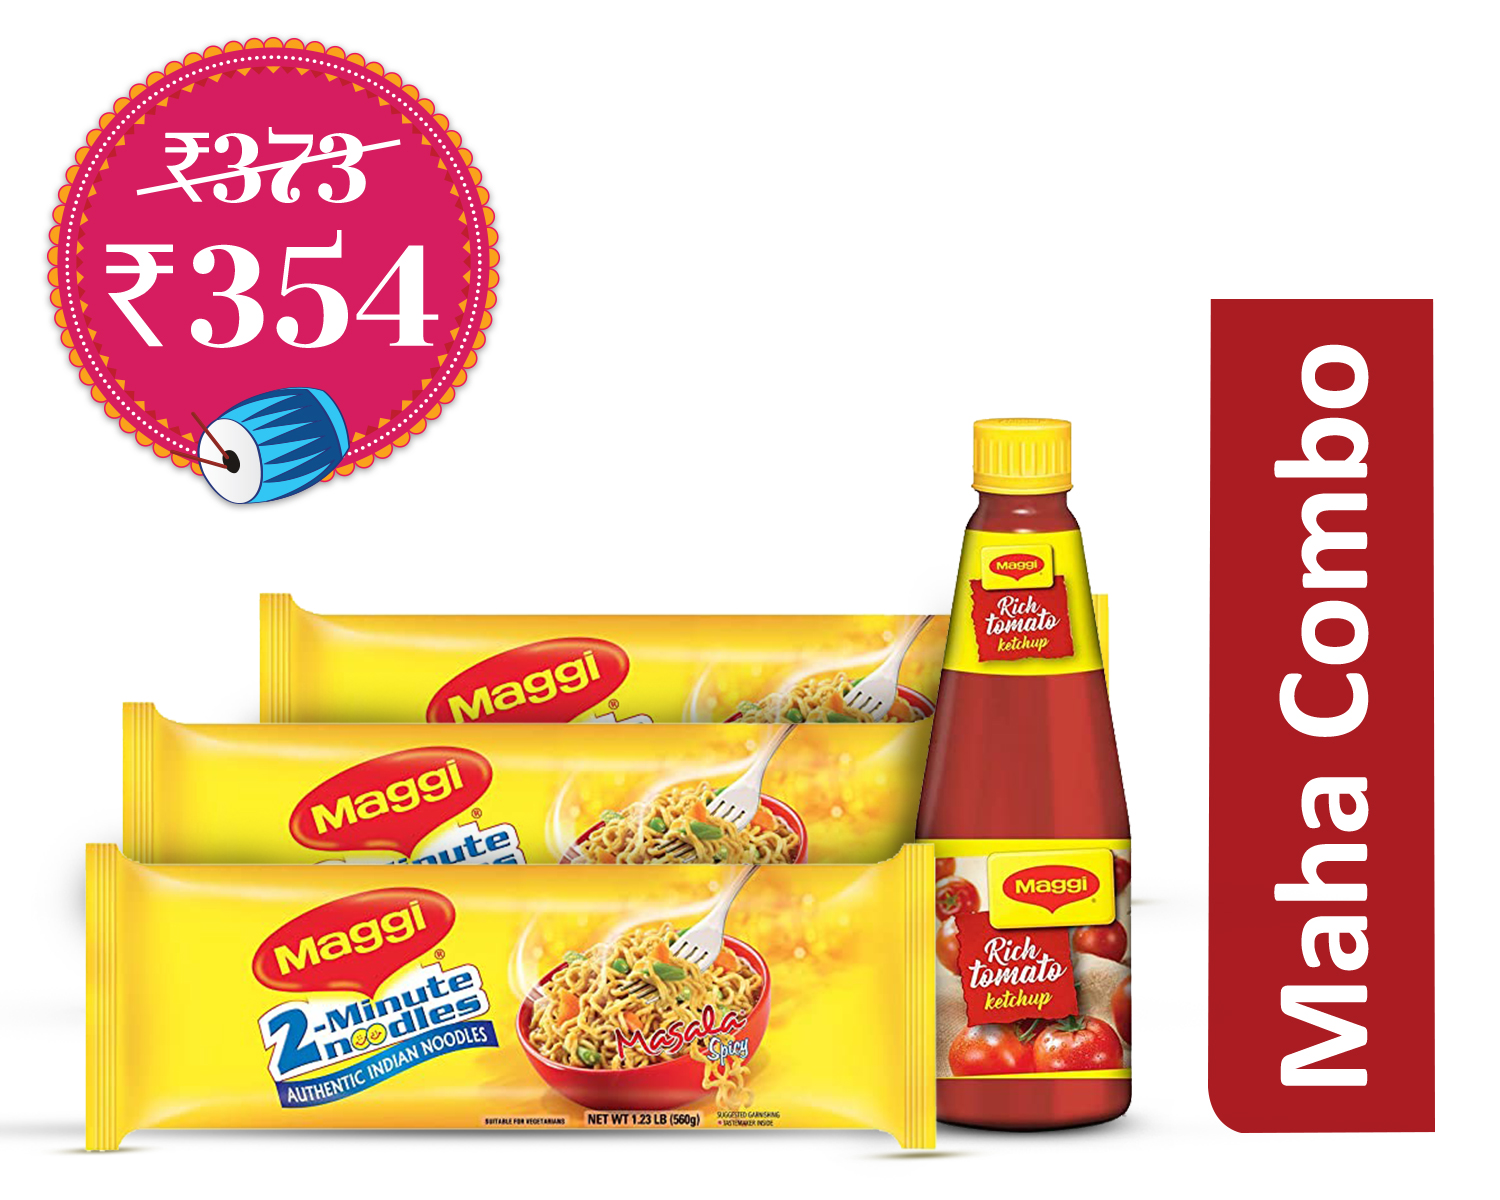 Last Minute Fixes Veg (1Unit) : Maggi Masala Noodles 560 gm * 3 + Maggi Tomato Ketchhup Bottle 500 gm